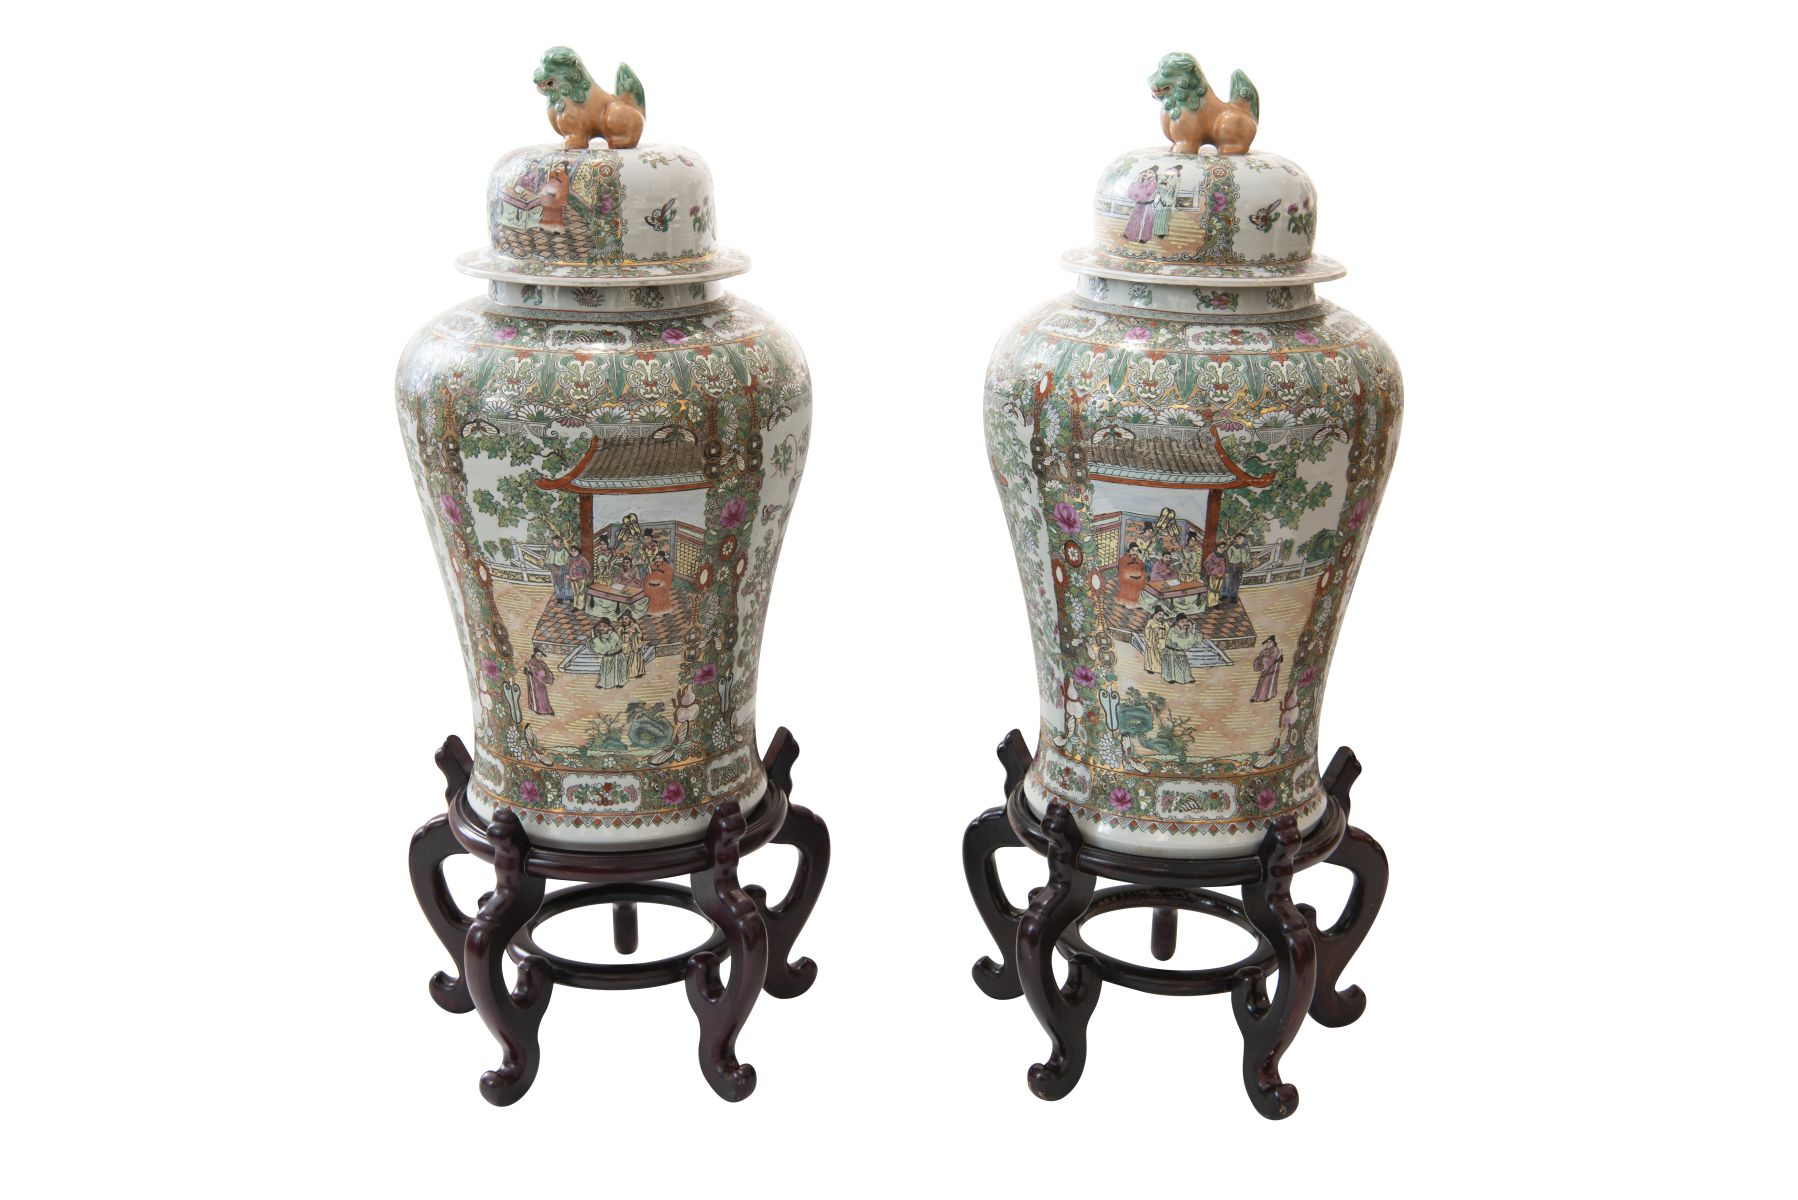 #195 Pair of Chinese lidded vases | Paar Chinessiche Deckelvasen Image